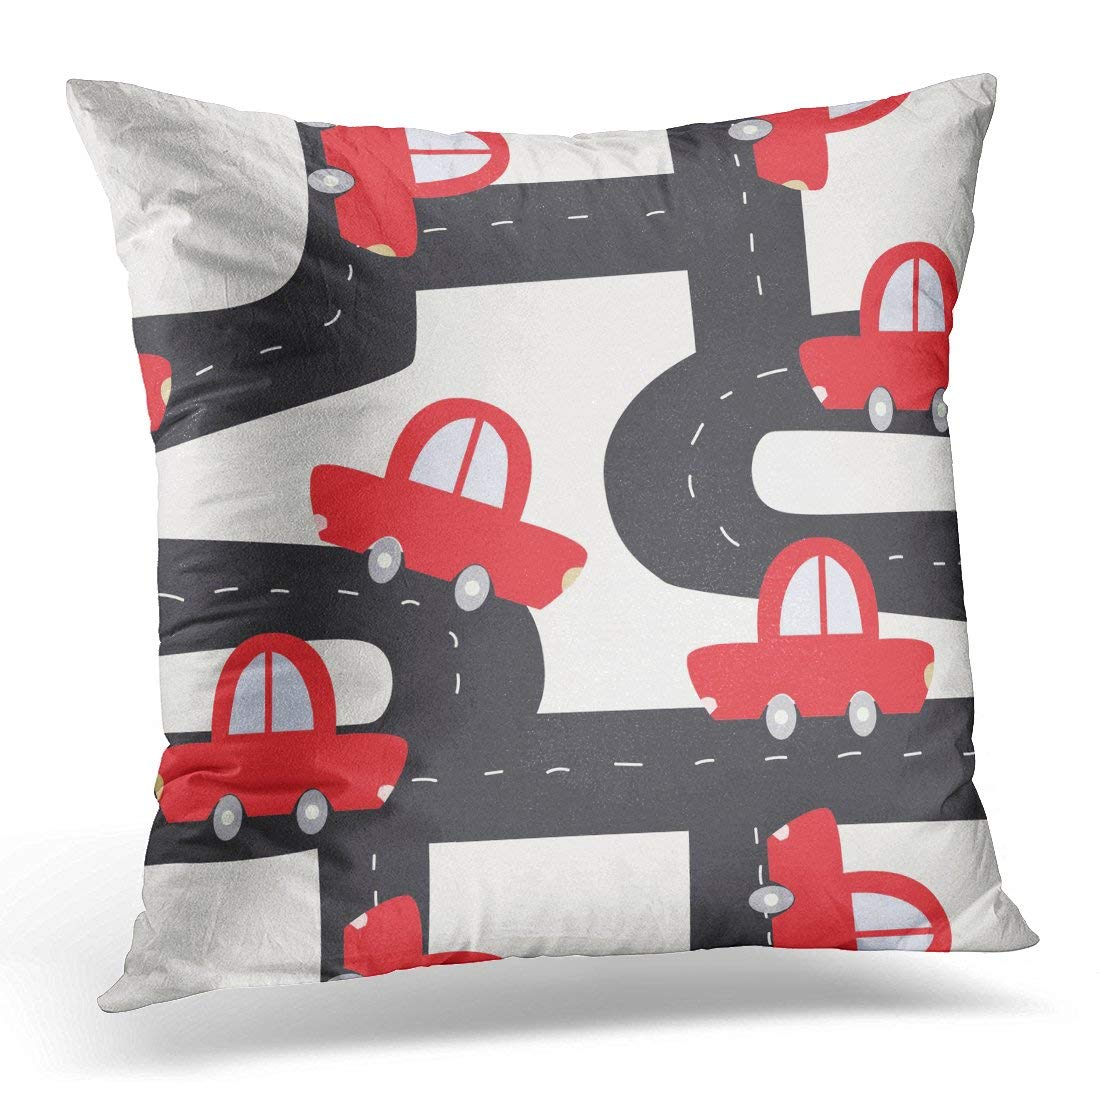 CMFUN Adventure Funny Red Car on The Road Kids Asphalt Pillow Case Pillow Cover 18x18 inch